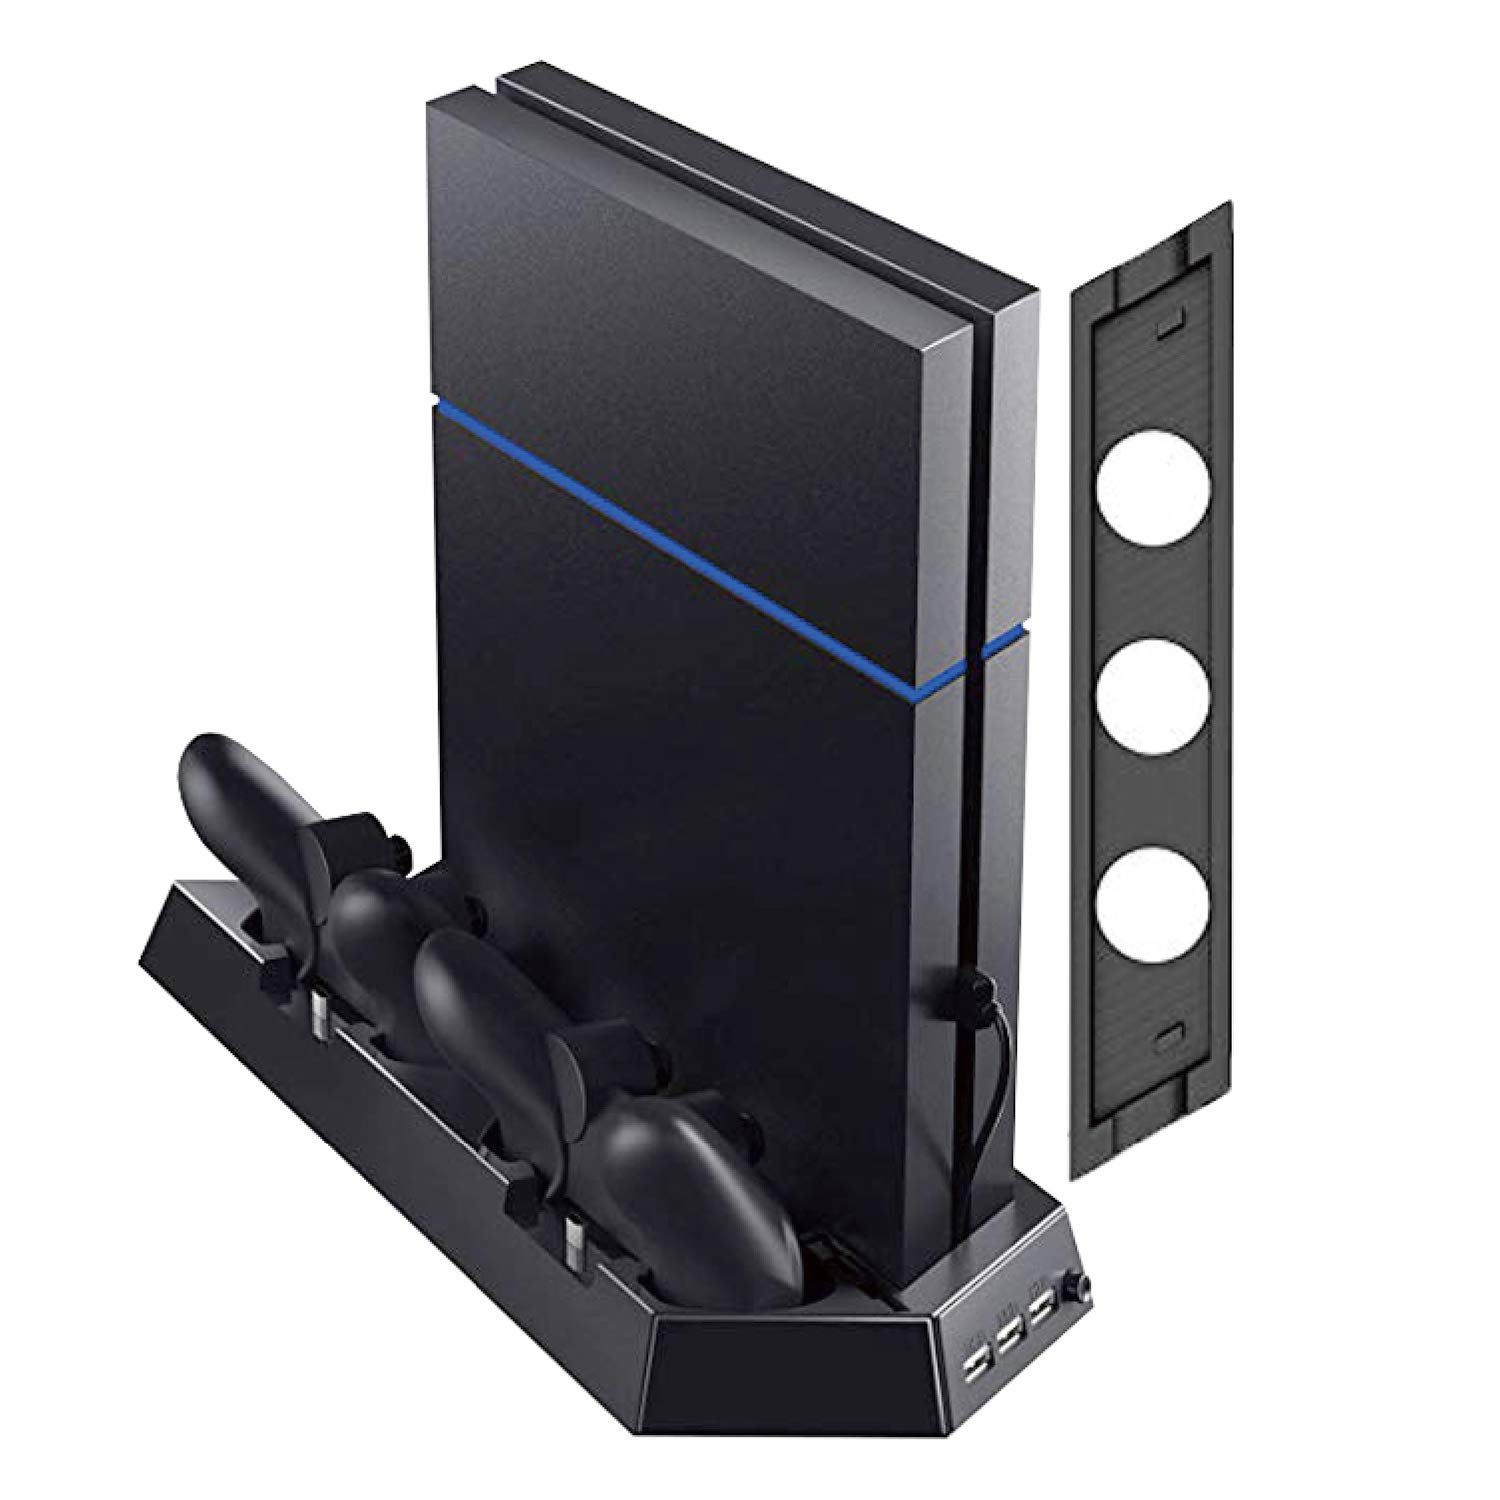 Vertical Stand with Cooling Fan for PS4 Slim / Pro / Regular PlayStation 4, Controllers Charging Station with Dual Charger Ports and USB HUB for Console Dualshock 4 Controller by ARESOUL